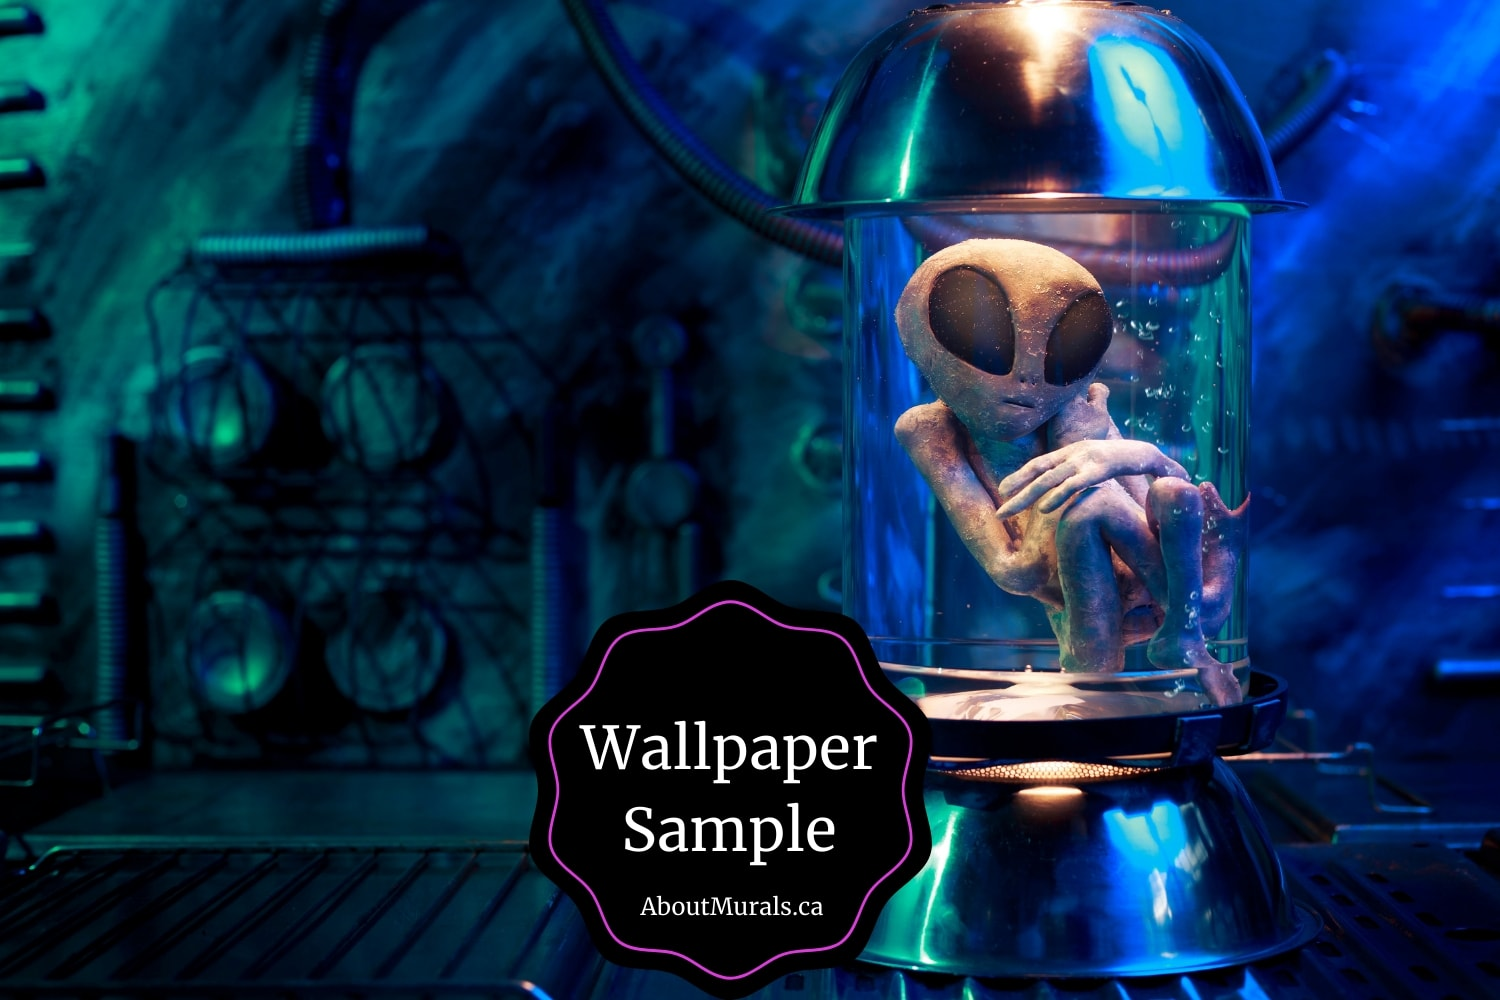 An alien wallpaper sample featuring an extra-terrestrial floating in a laboratory jar.